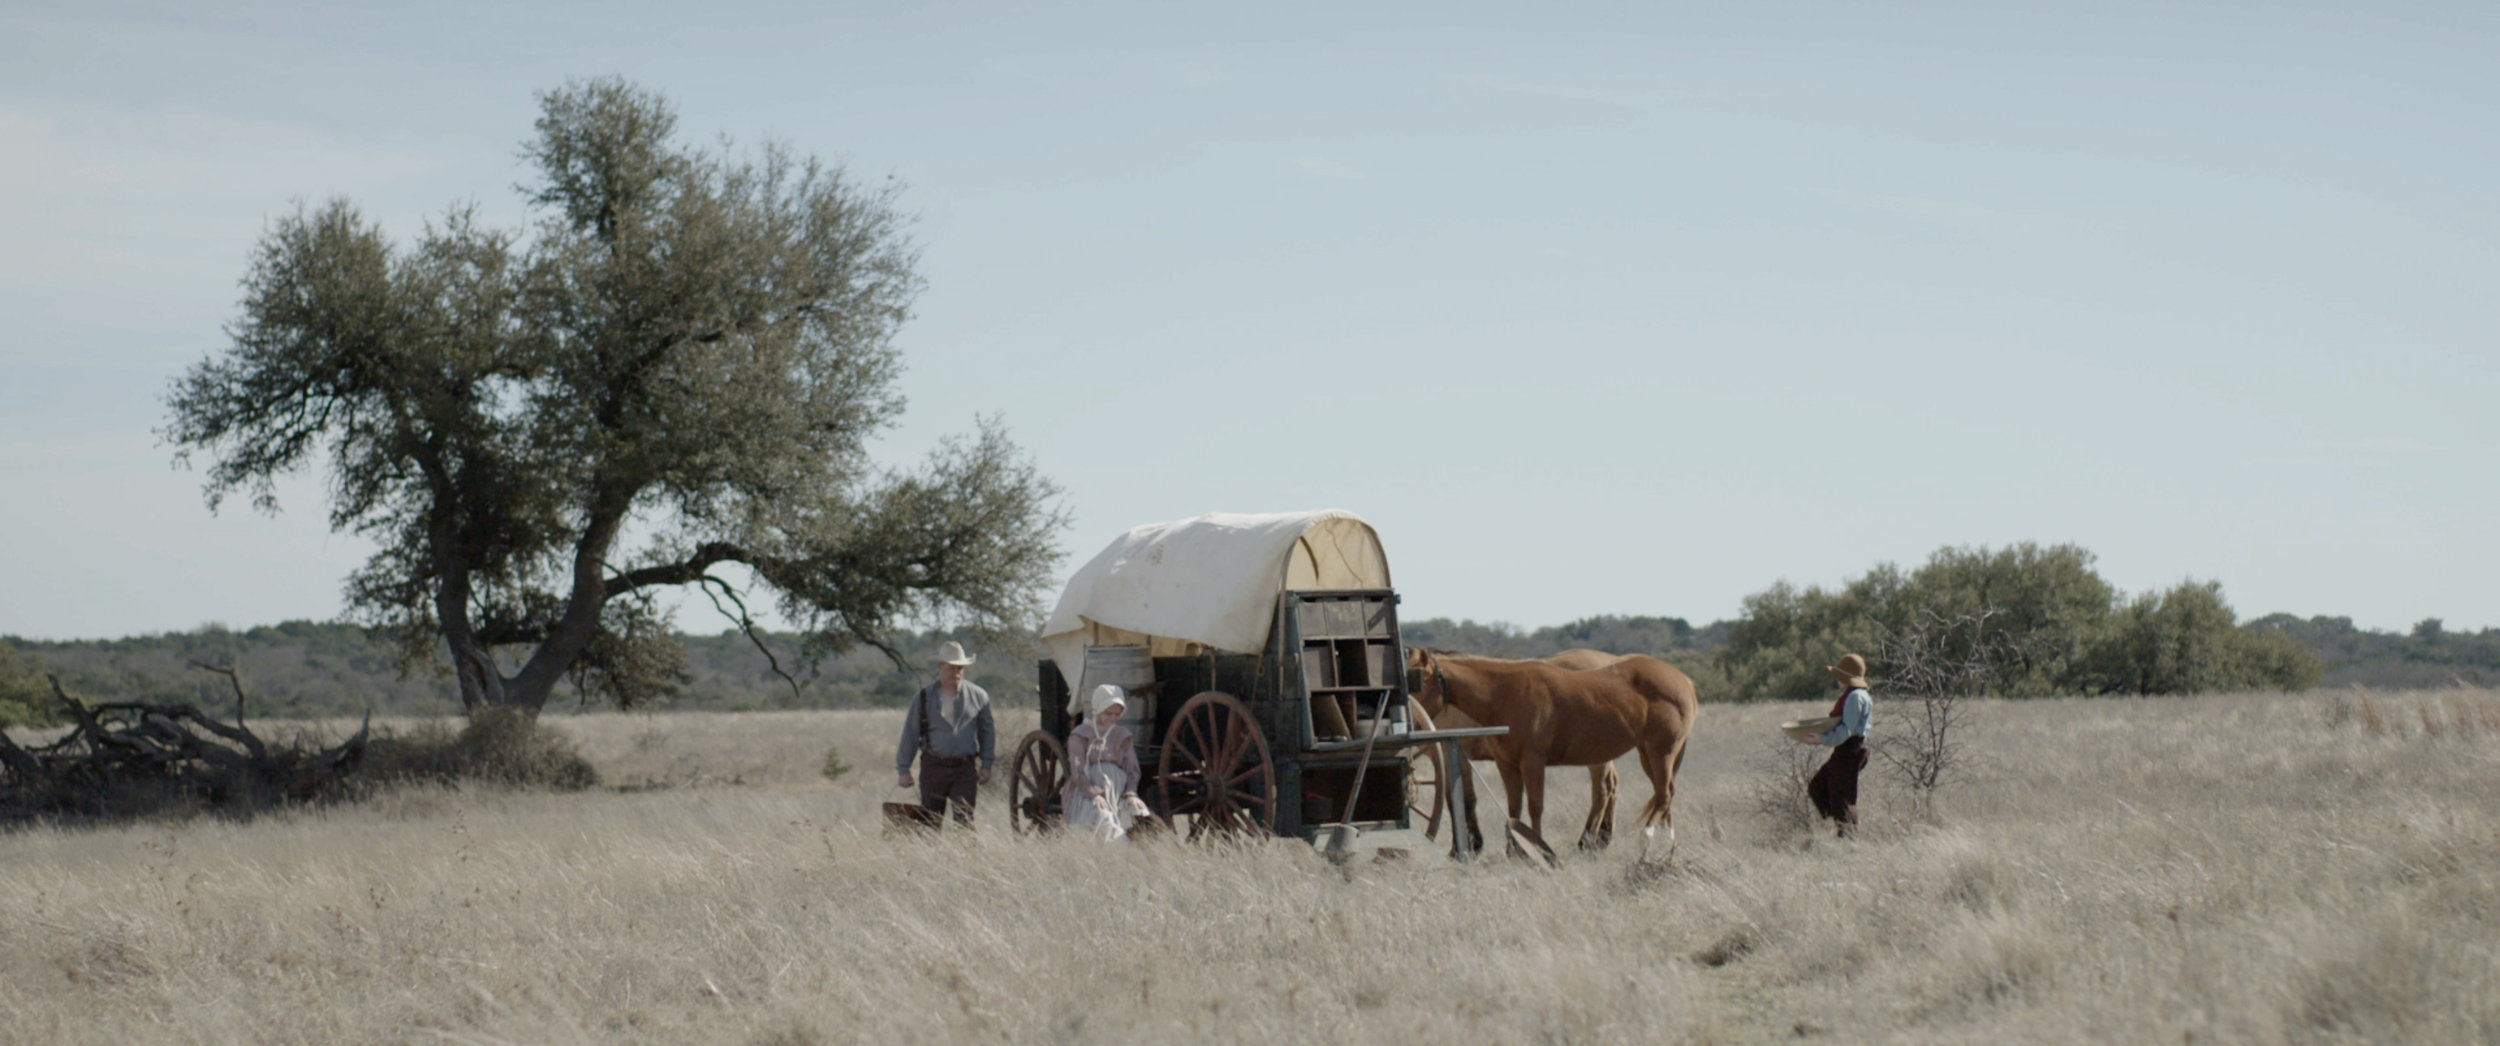 Red Steagall's Covered Wagon - A major theme in Thistle Creek is the undeniable presence of settlers disturbing Comancheria in Texas. As an homage to some of our favorite films like Kelly Reichardt Meek's Cutoff, we wanted to include the recognizable image of the covered wagon. The renowned Texan poet and musician, Red Steagall, generously lent us his 1800s covered wagon, fully equipt with all the fixin's.